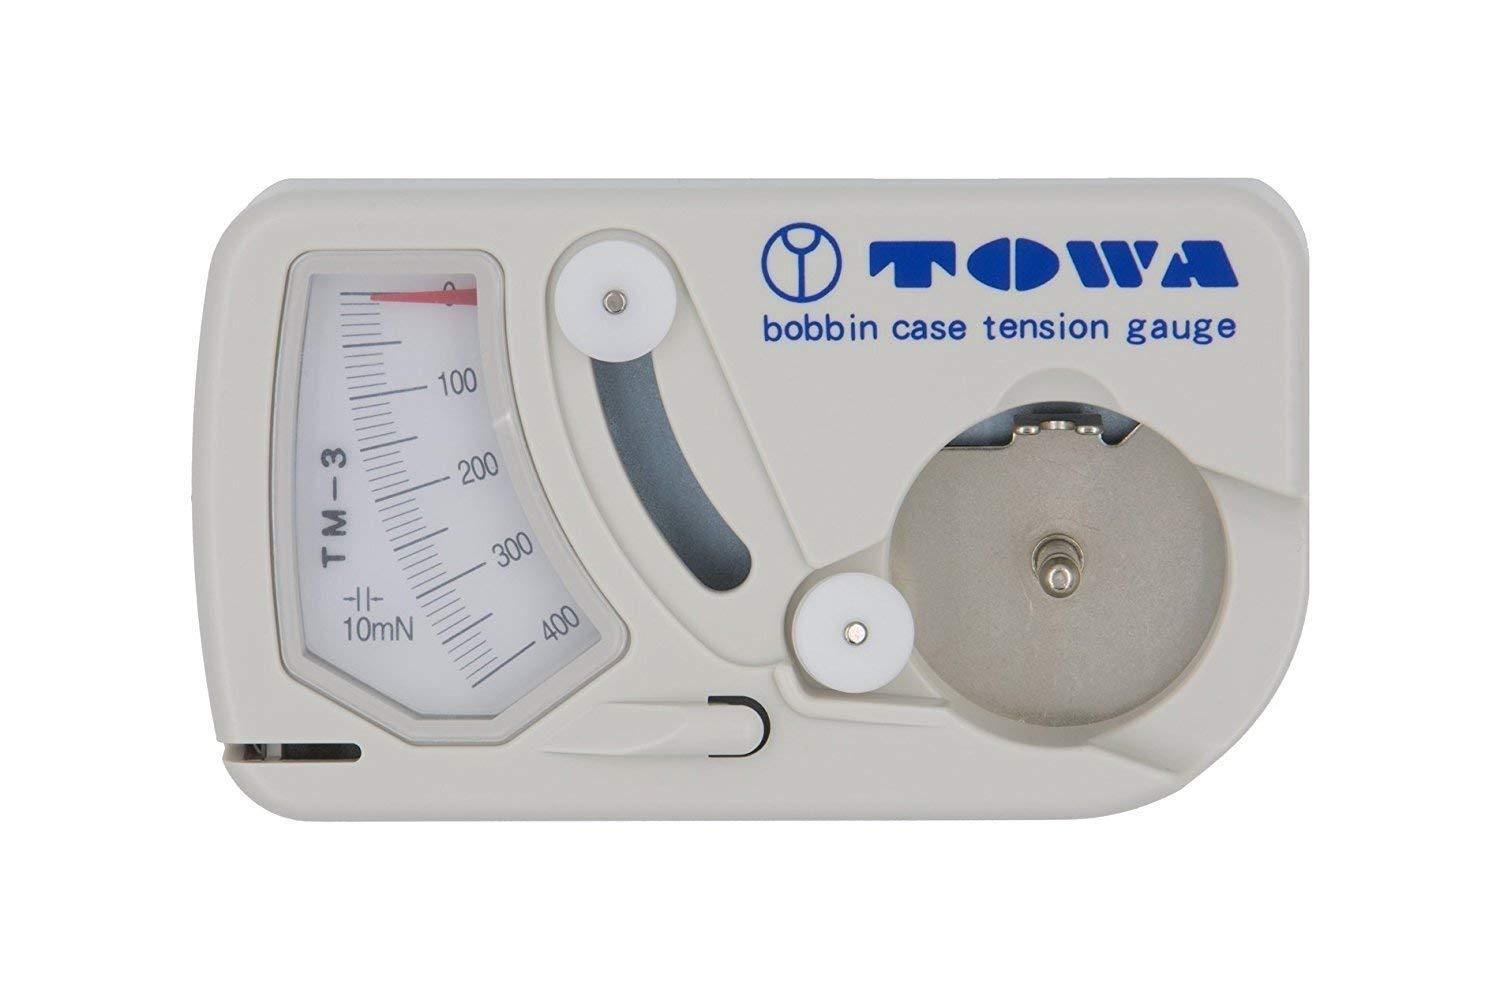 Achieving perfect thread tension is essential when sewing and quilting. This TOWA tension gauge will help! Check out these tips and tricks and watch the video tutorial. #forBeginners #Easy #ForTheHome #DIY #Sewing #troubleshoot #Beginner #simple #video #sewingmachine #quick #tutorial #SewMuchMoore #SewMuchMooreInStore